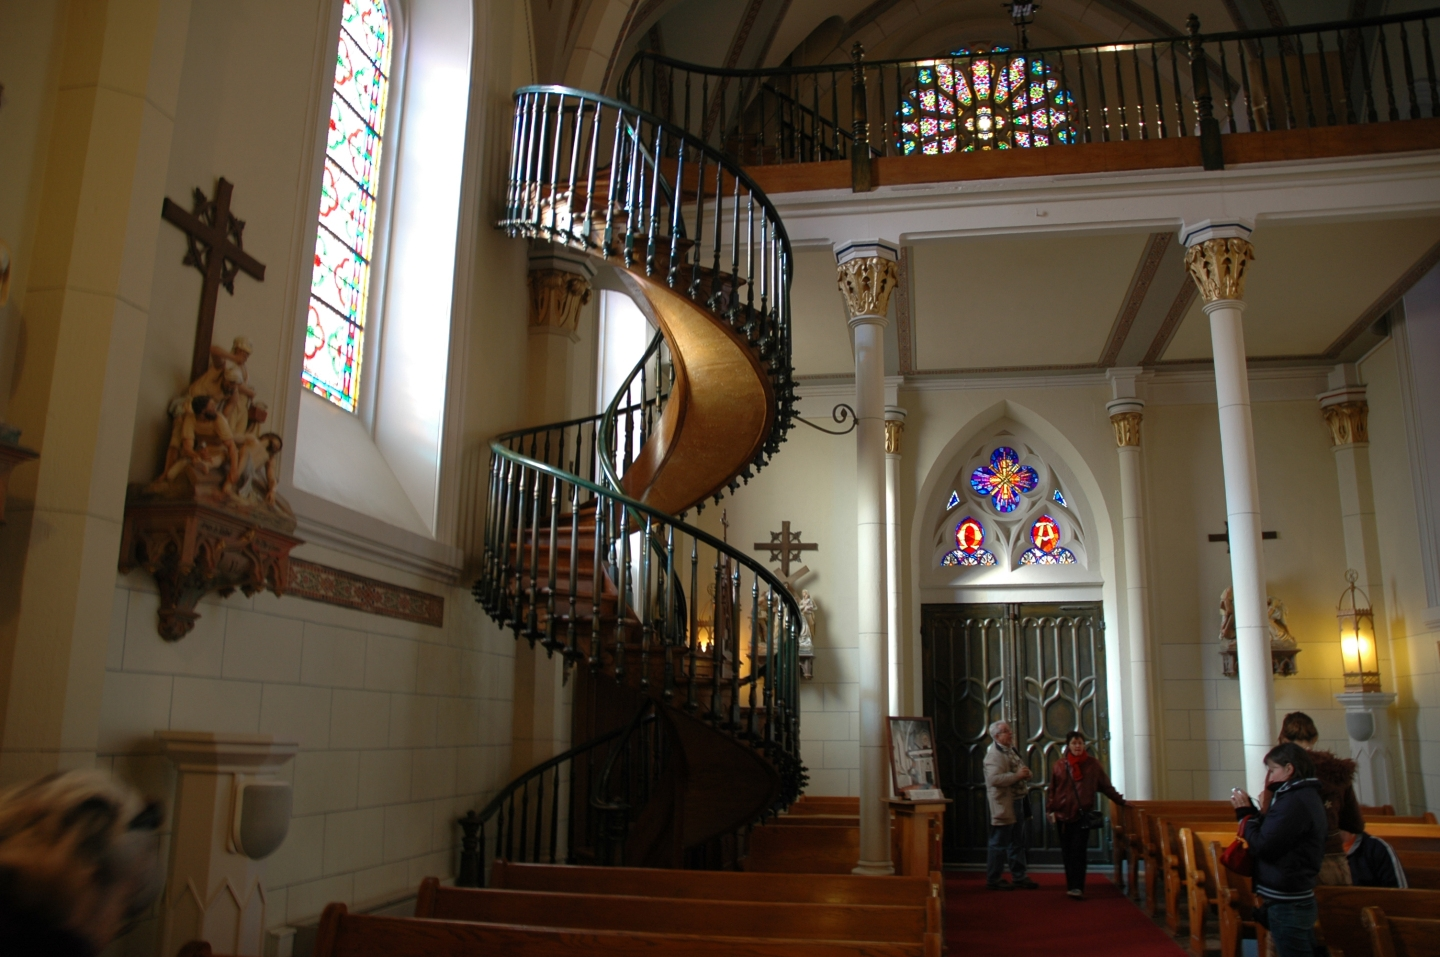 The Staircase St Joseph Built In New Mexico   Loretto Chapel Staircase Wood   Free Standing   St Joseph   Nm Church Santa Fe   Light   Sister